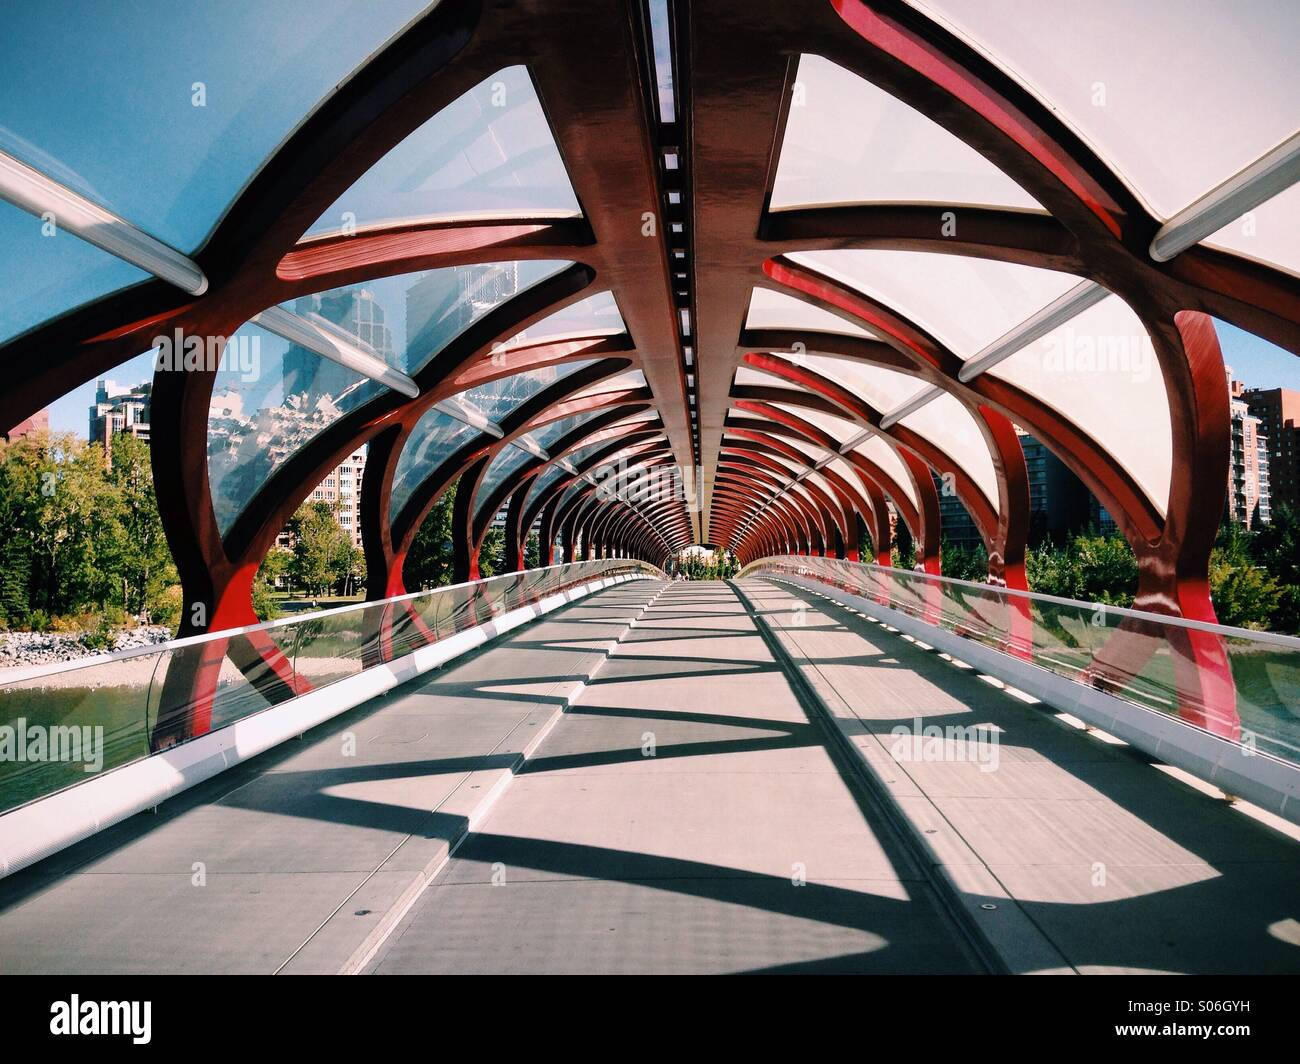 A late summer afternoon on the Peace Bridge in Calgary, Alberta Canada - Stock Image